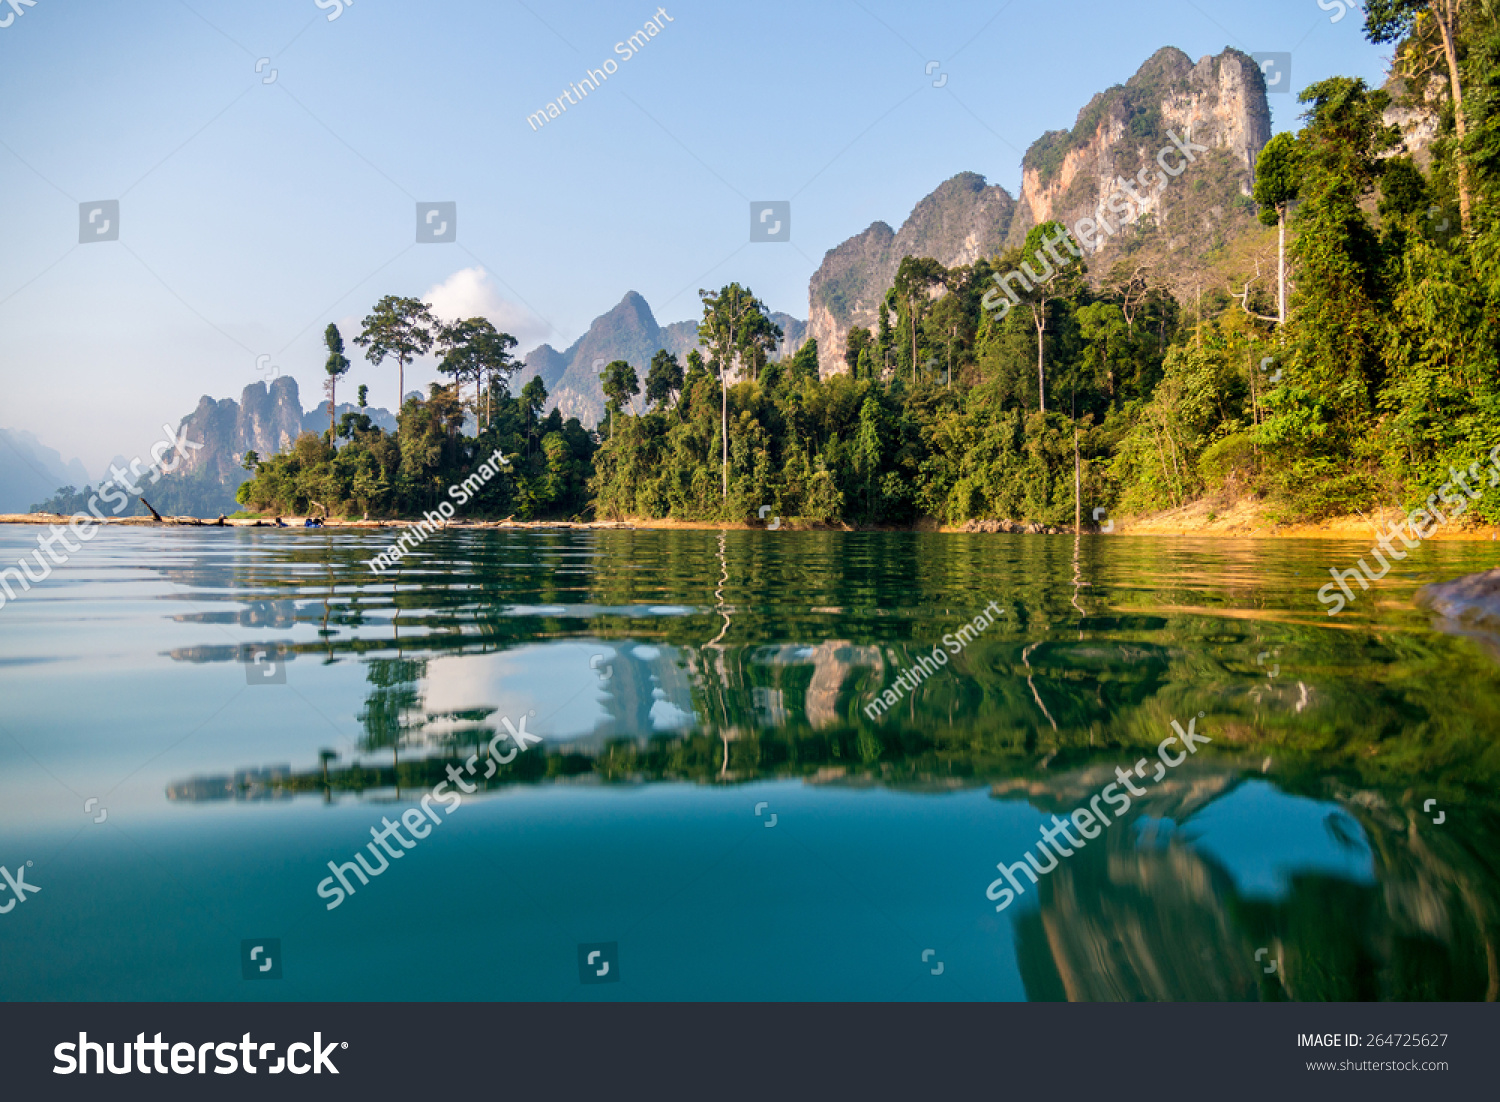 Beautiful mountains lake river sky and natural attractions in Ratchaprapha Dam at Khao Sok National Park Surat Thani Province Thailand